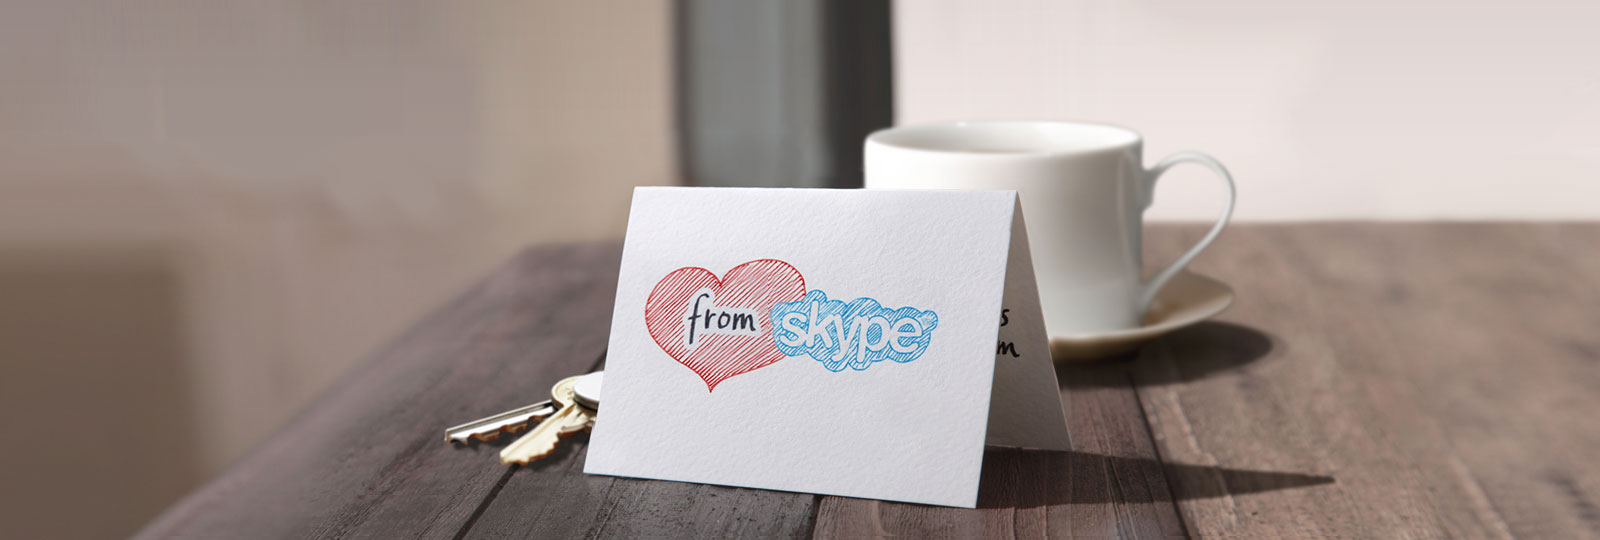 Start using the very best of Skype today.